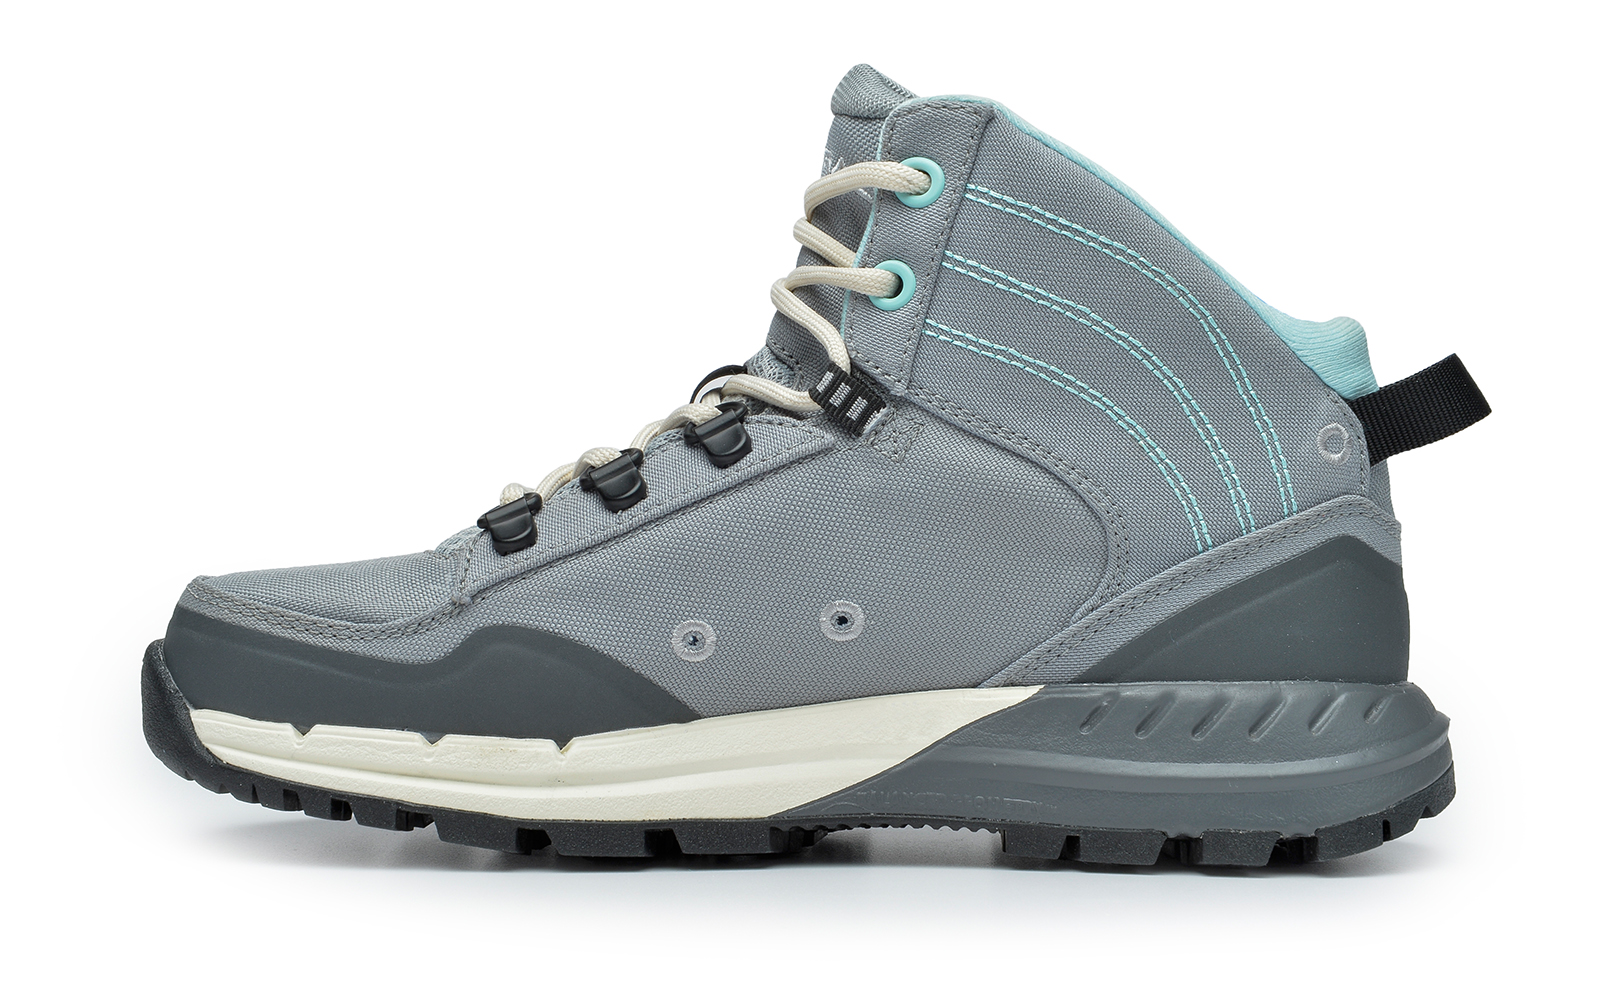 493d62675dbc Technical Footwear - Water